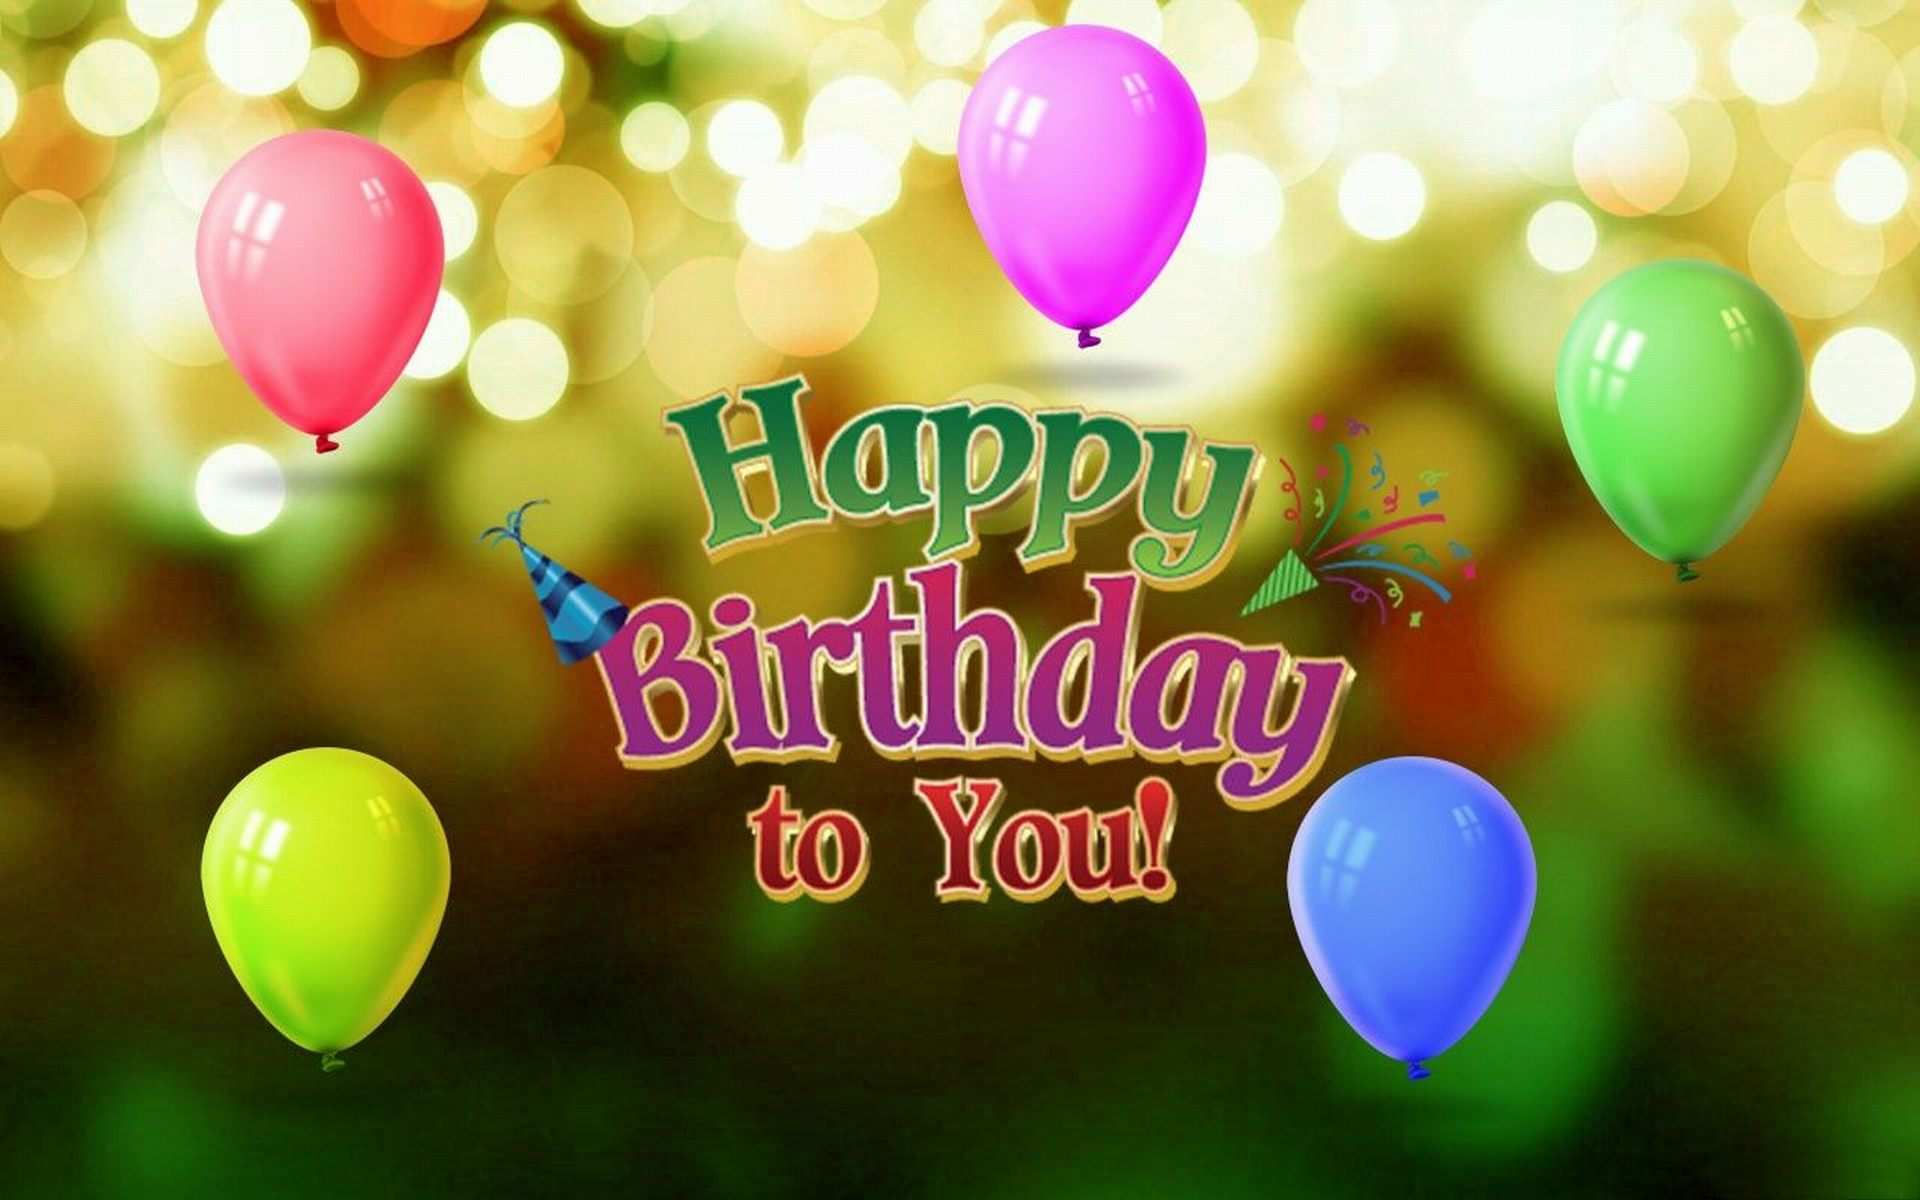 wallpaper happy birthday to you ; 2682b27f0f63bf0a6579c68b1e80d19a